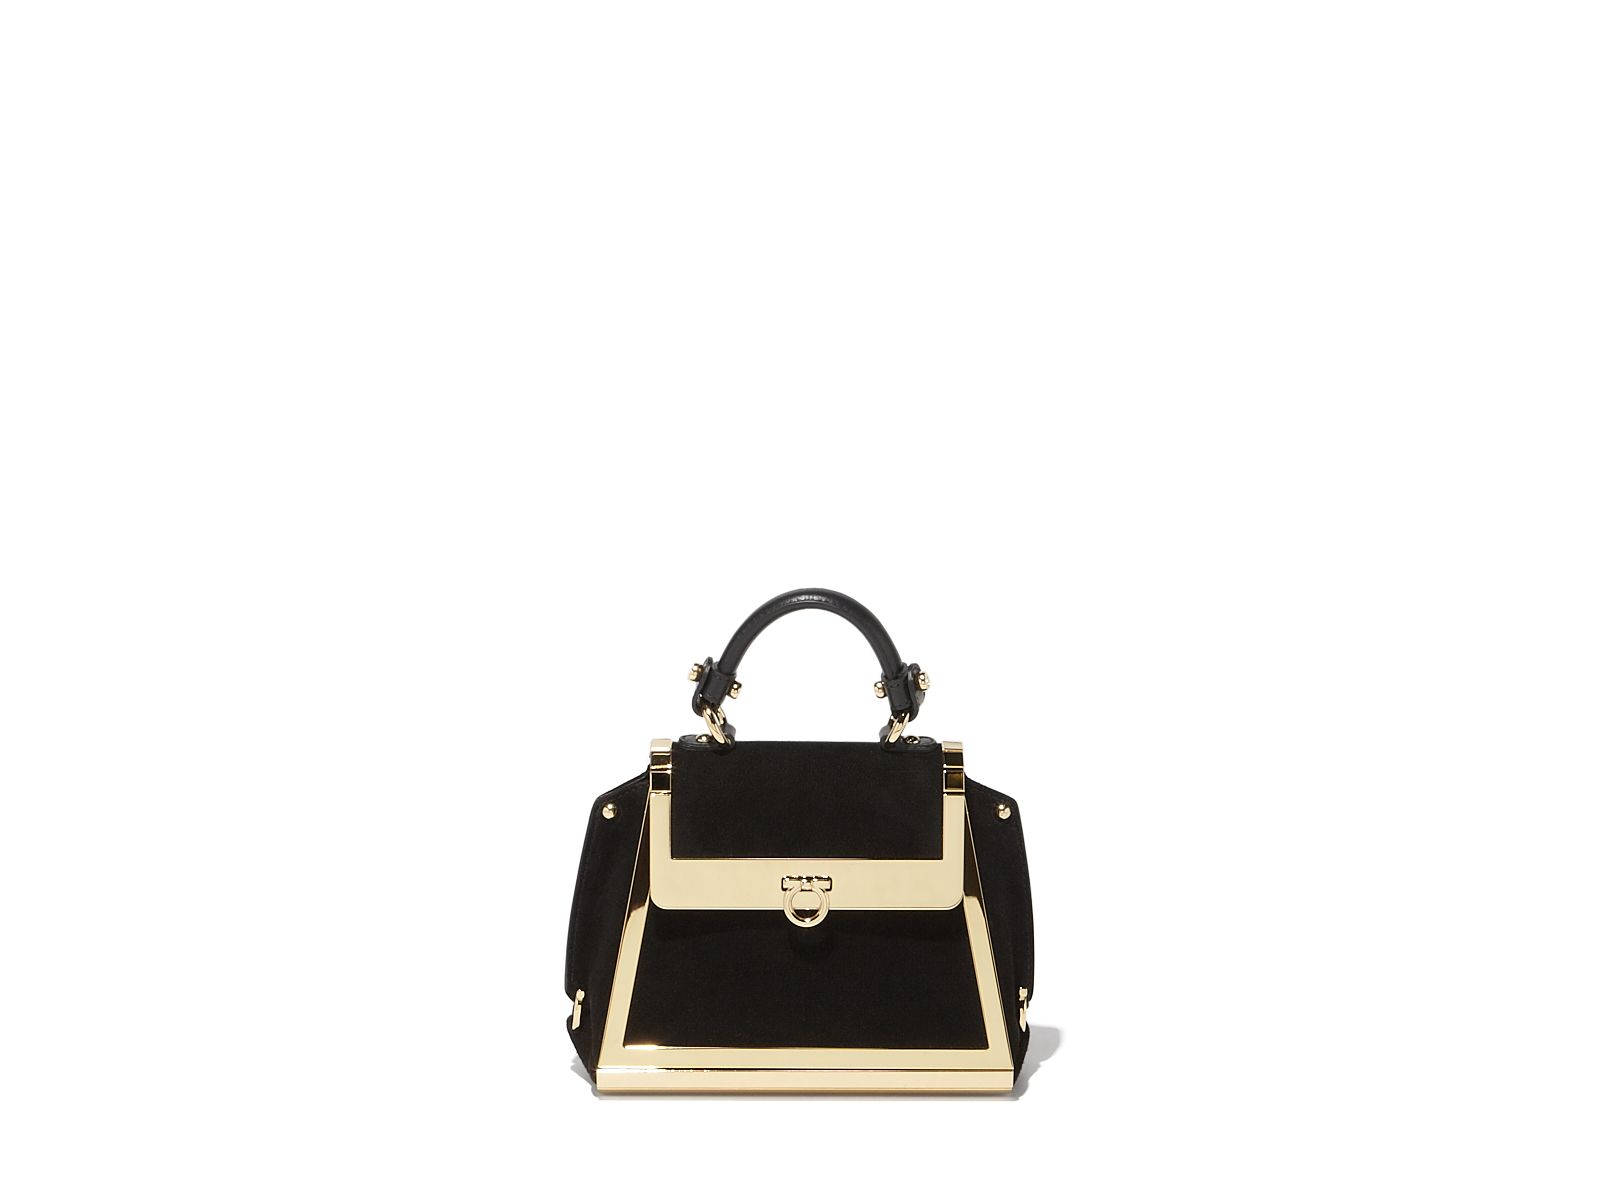 5350a66387 Mini Sofia Bag - Handbags - Women - Salvatore Ferragamo